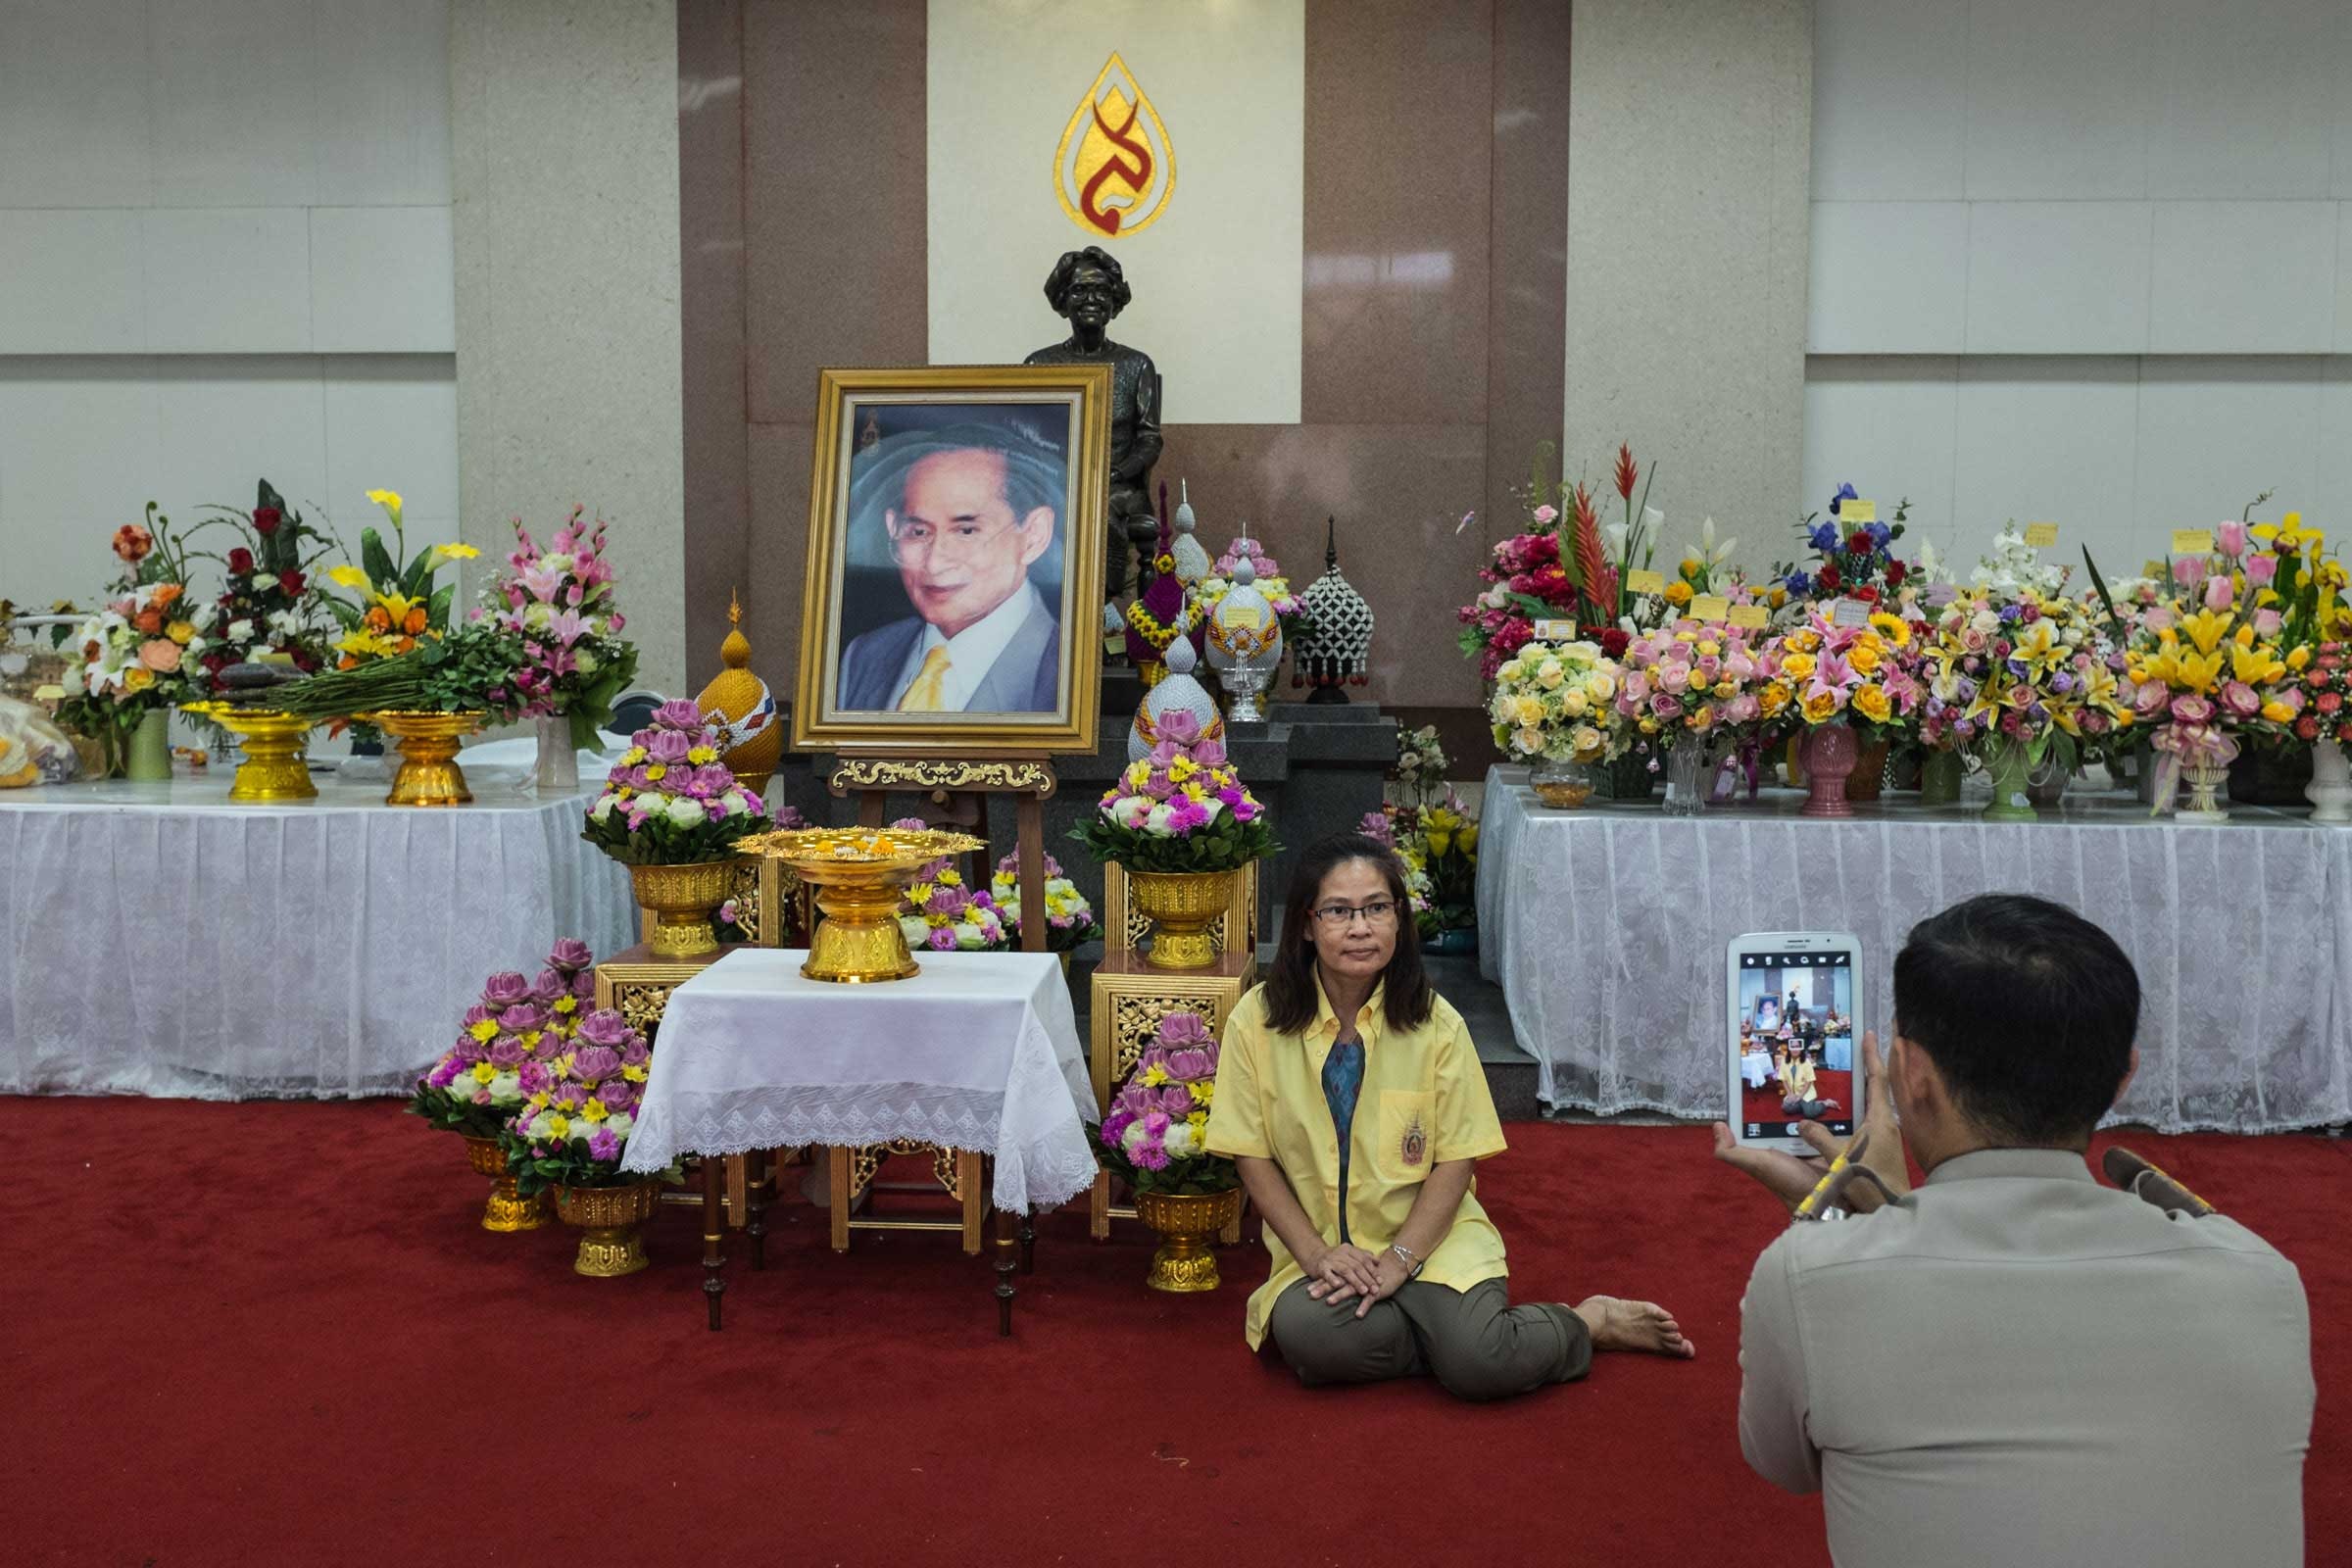 A Thai military officer photographs a woman who has come to pay respects to King Bhumibol at Siriraj Hospital in Bangkok, Nov. 2014. Every day, people visit his shrine to pray for his health.